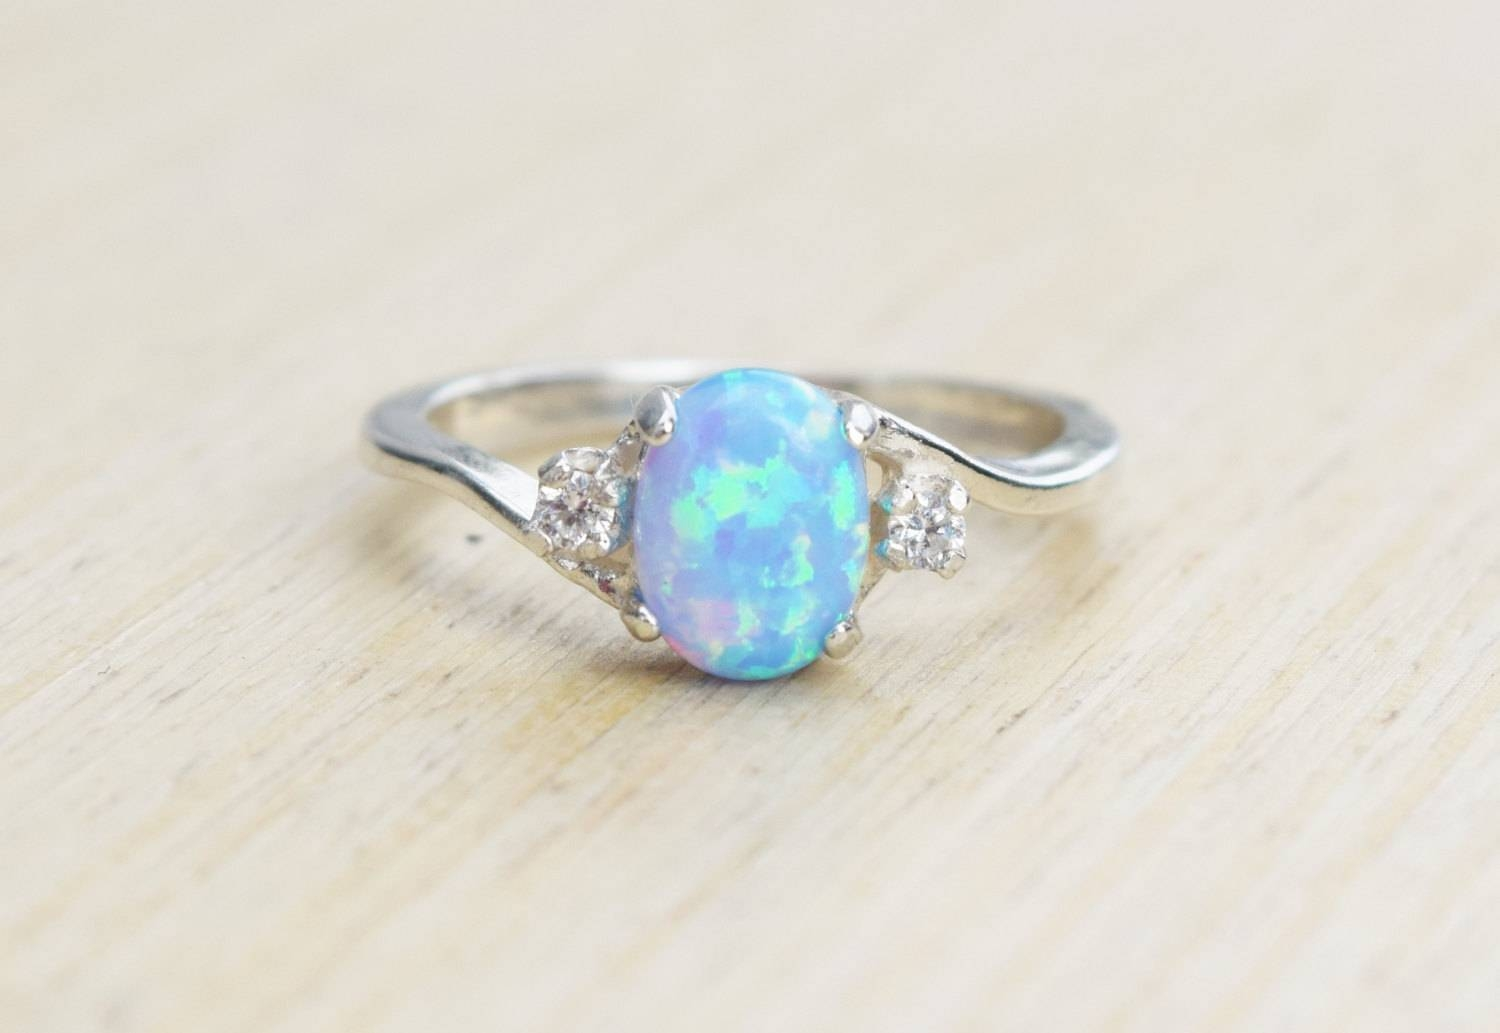 Silver Lab Opal Ring Blue Opal Ring Light Blue Opal Ring Regarding Blue Opal Wedding Rings (View 12 of 15)